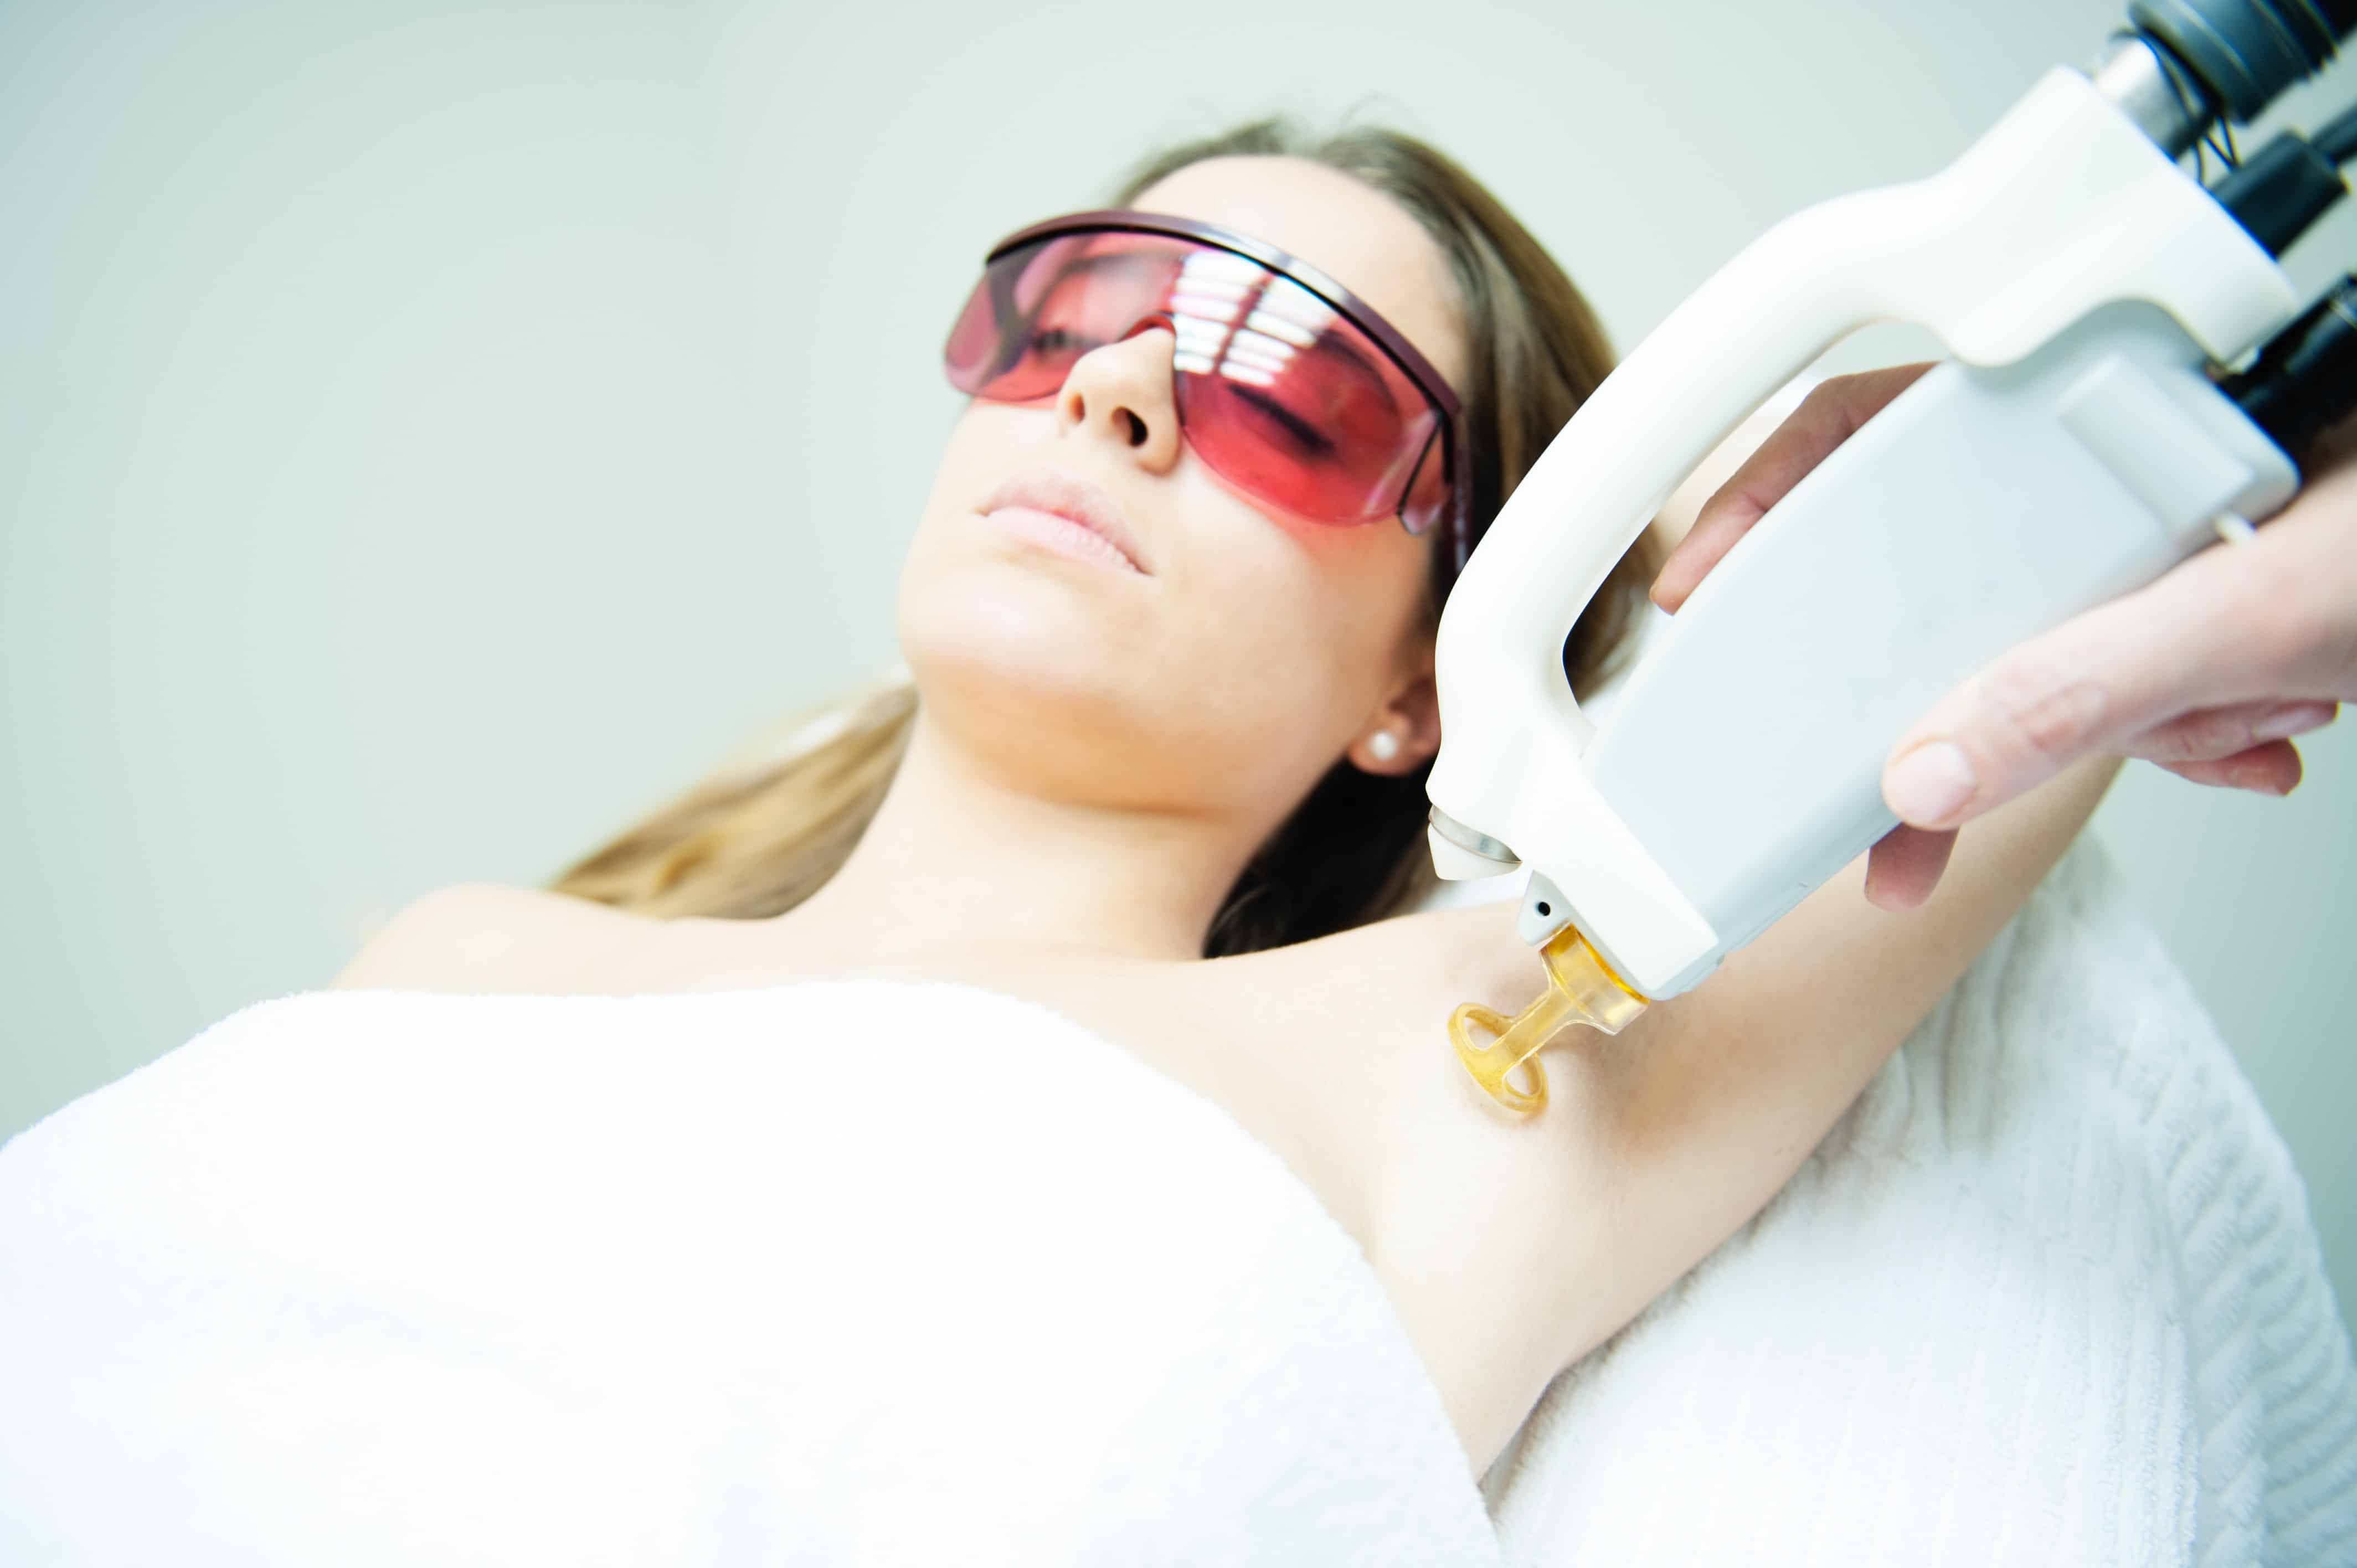 How Painful Is Laser Hair Removal